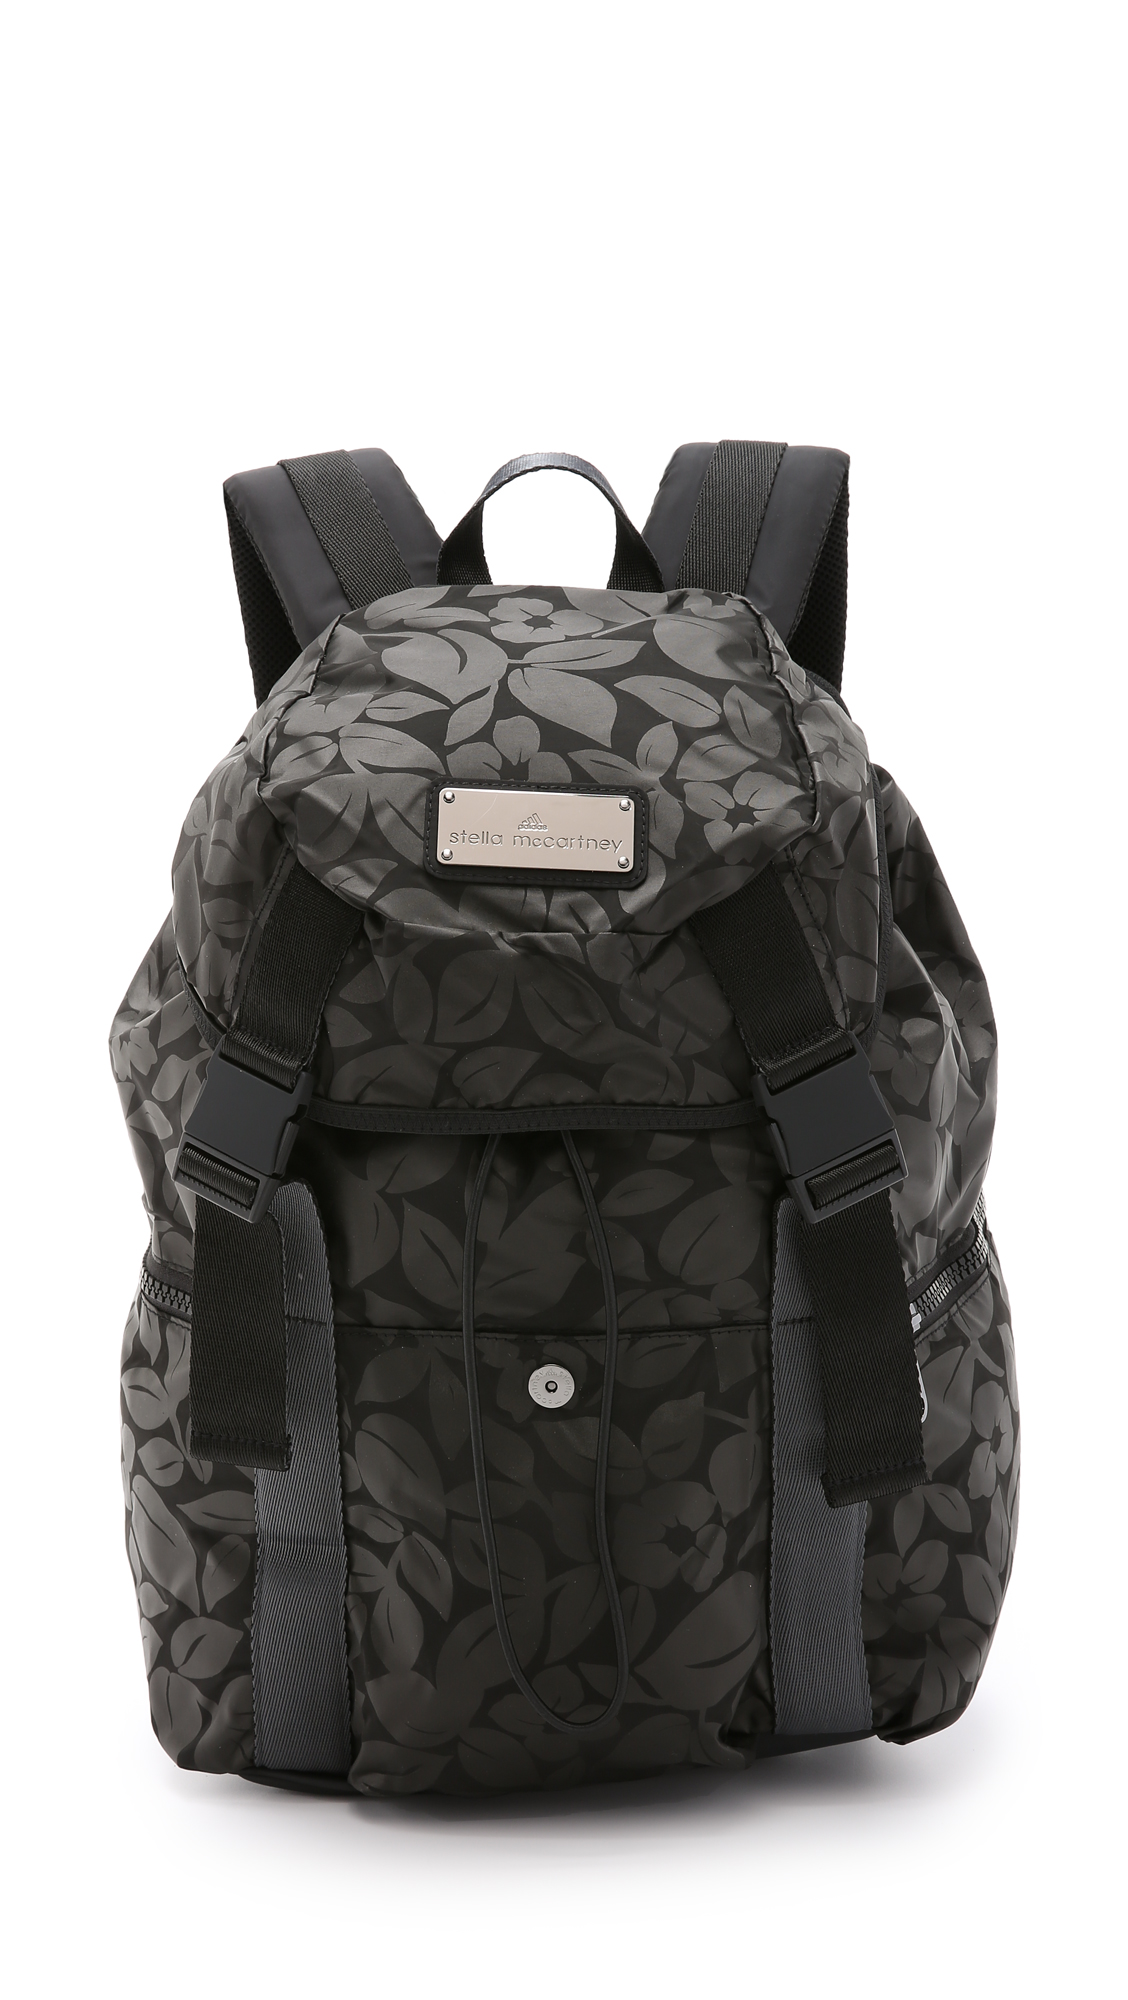 e0ac2952d0c9 adidas by Stella McCartney Backpack